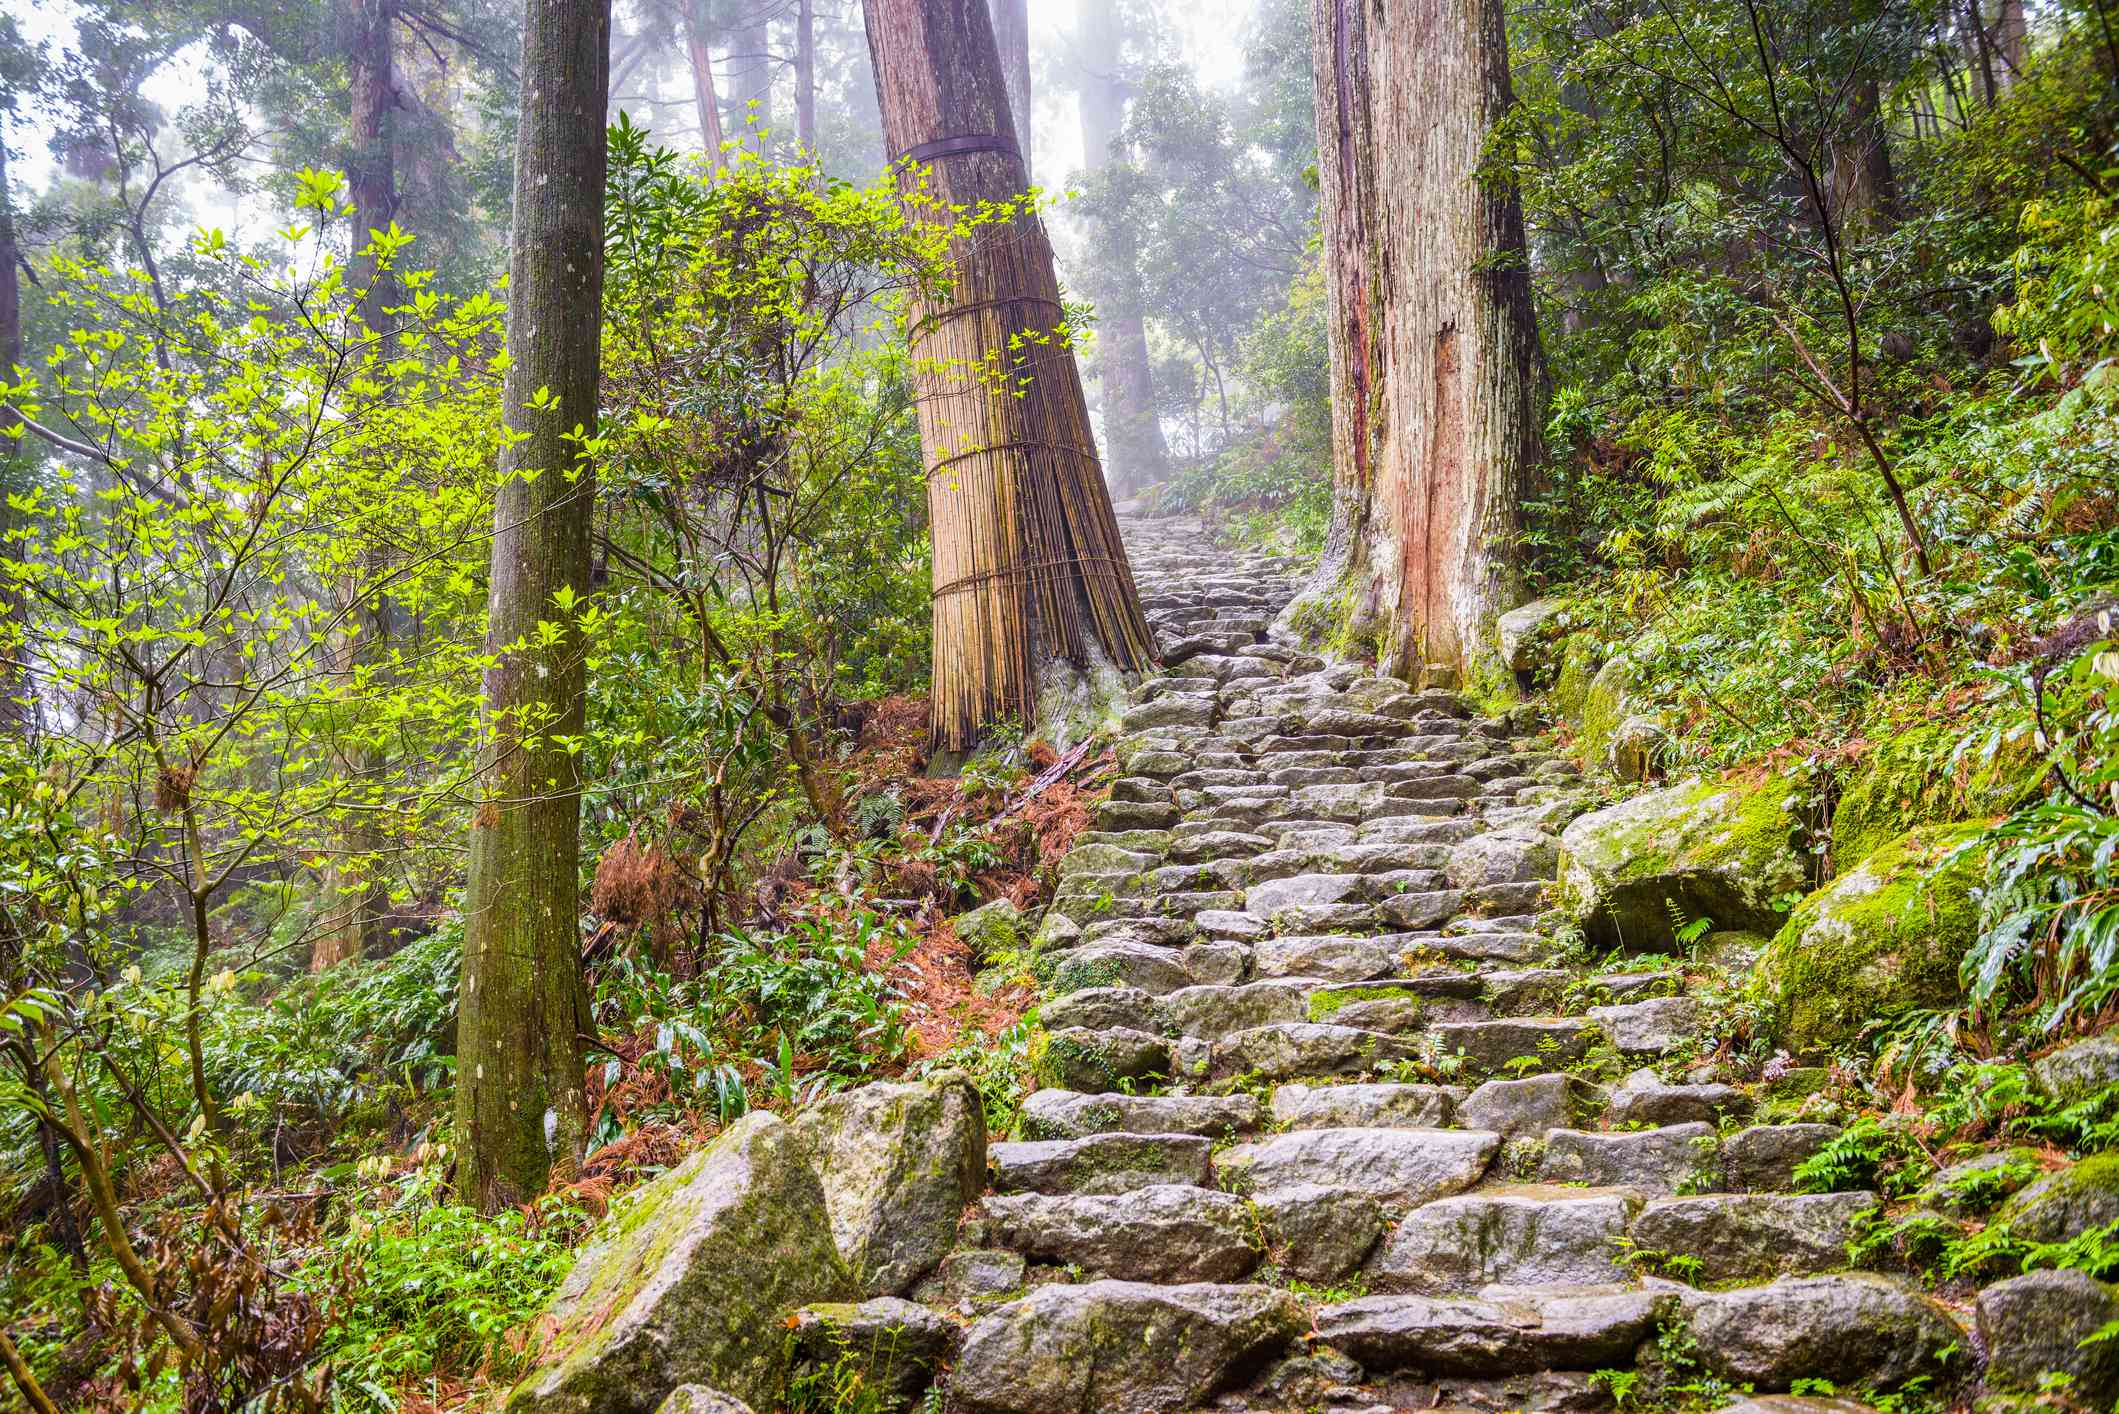 stone staircase going through a misty forest on the Kumano Kodo trail